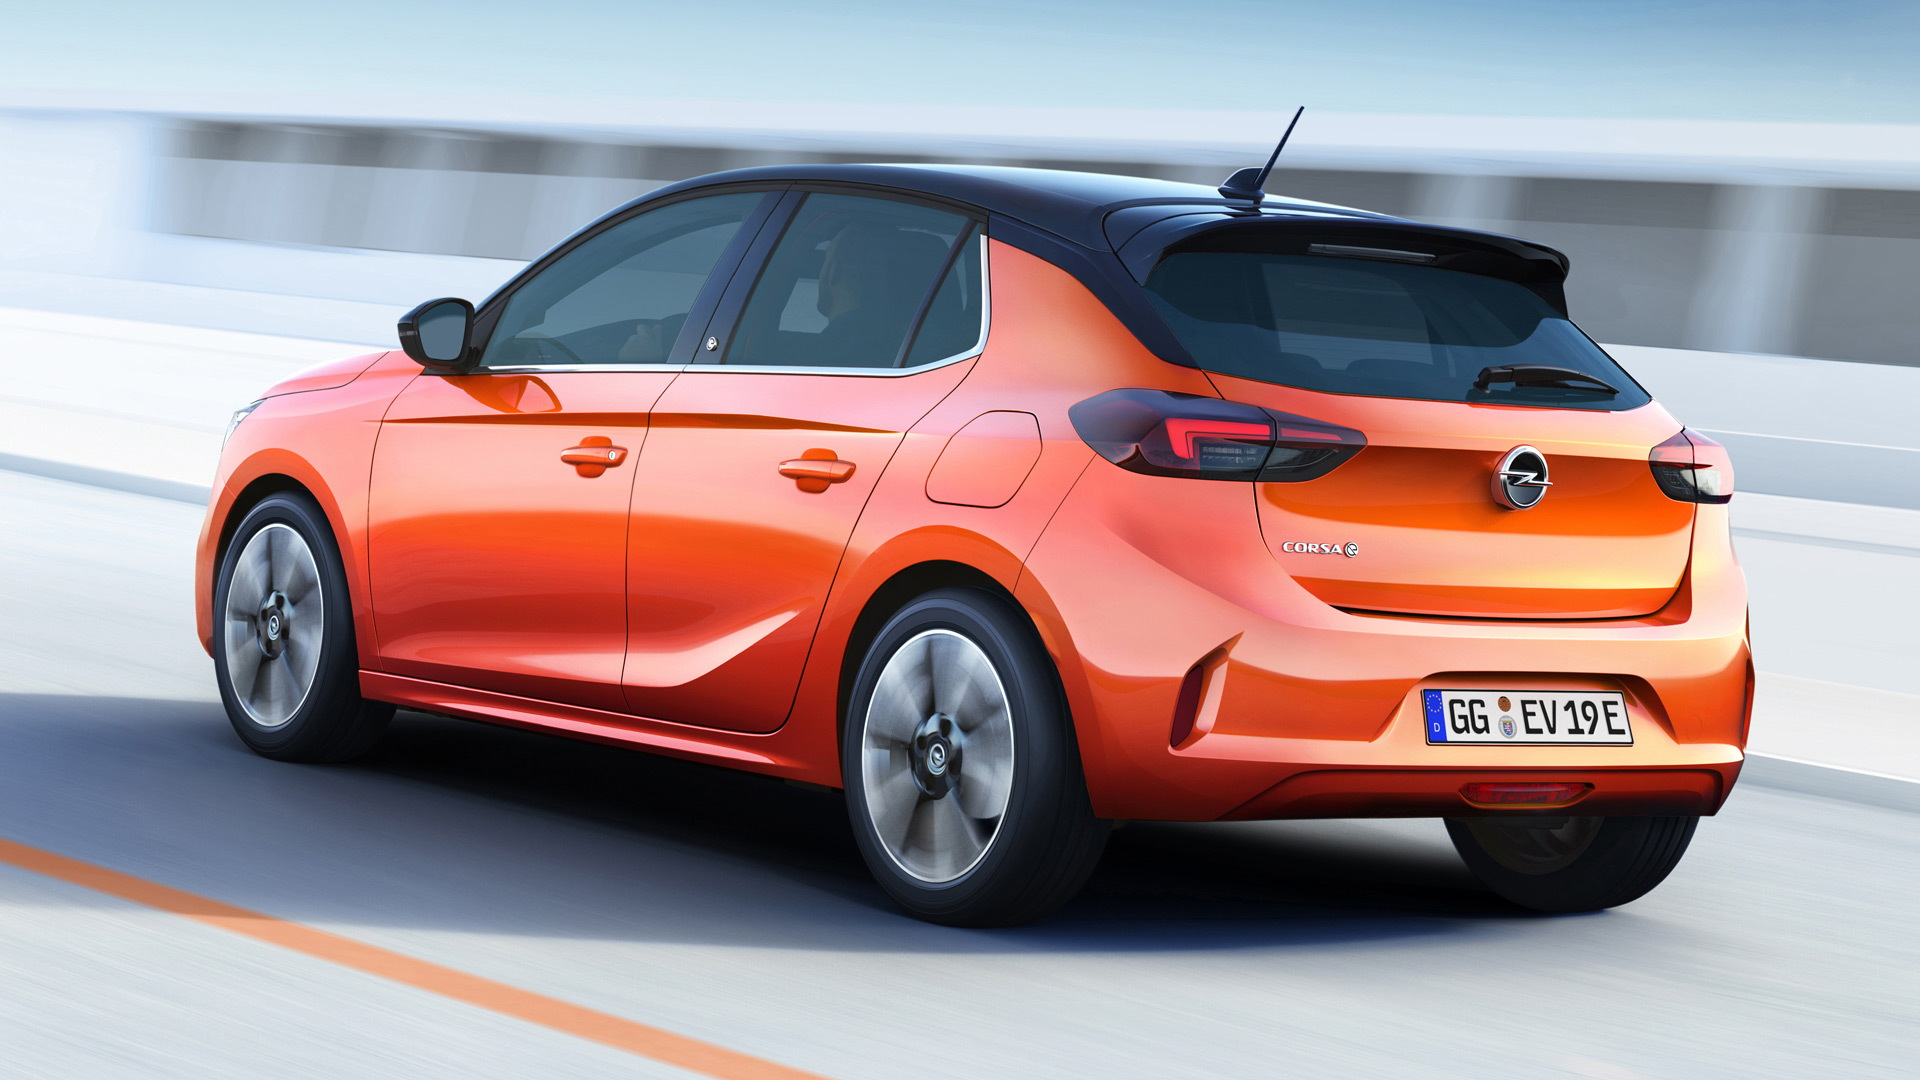 Opel/Vauxhall Corsa-e - 6th-gen hatch goes electric